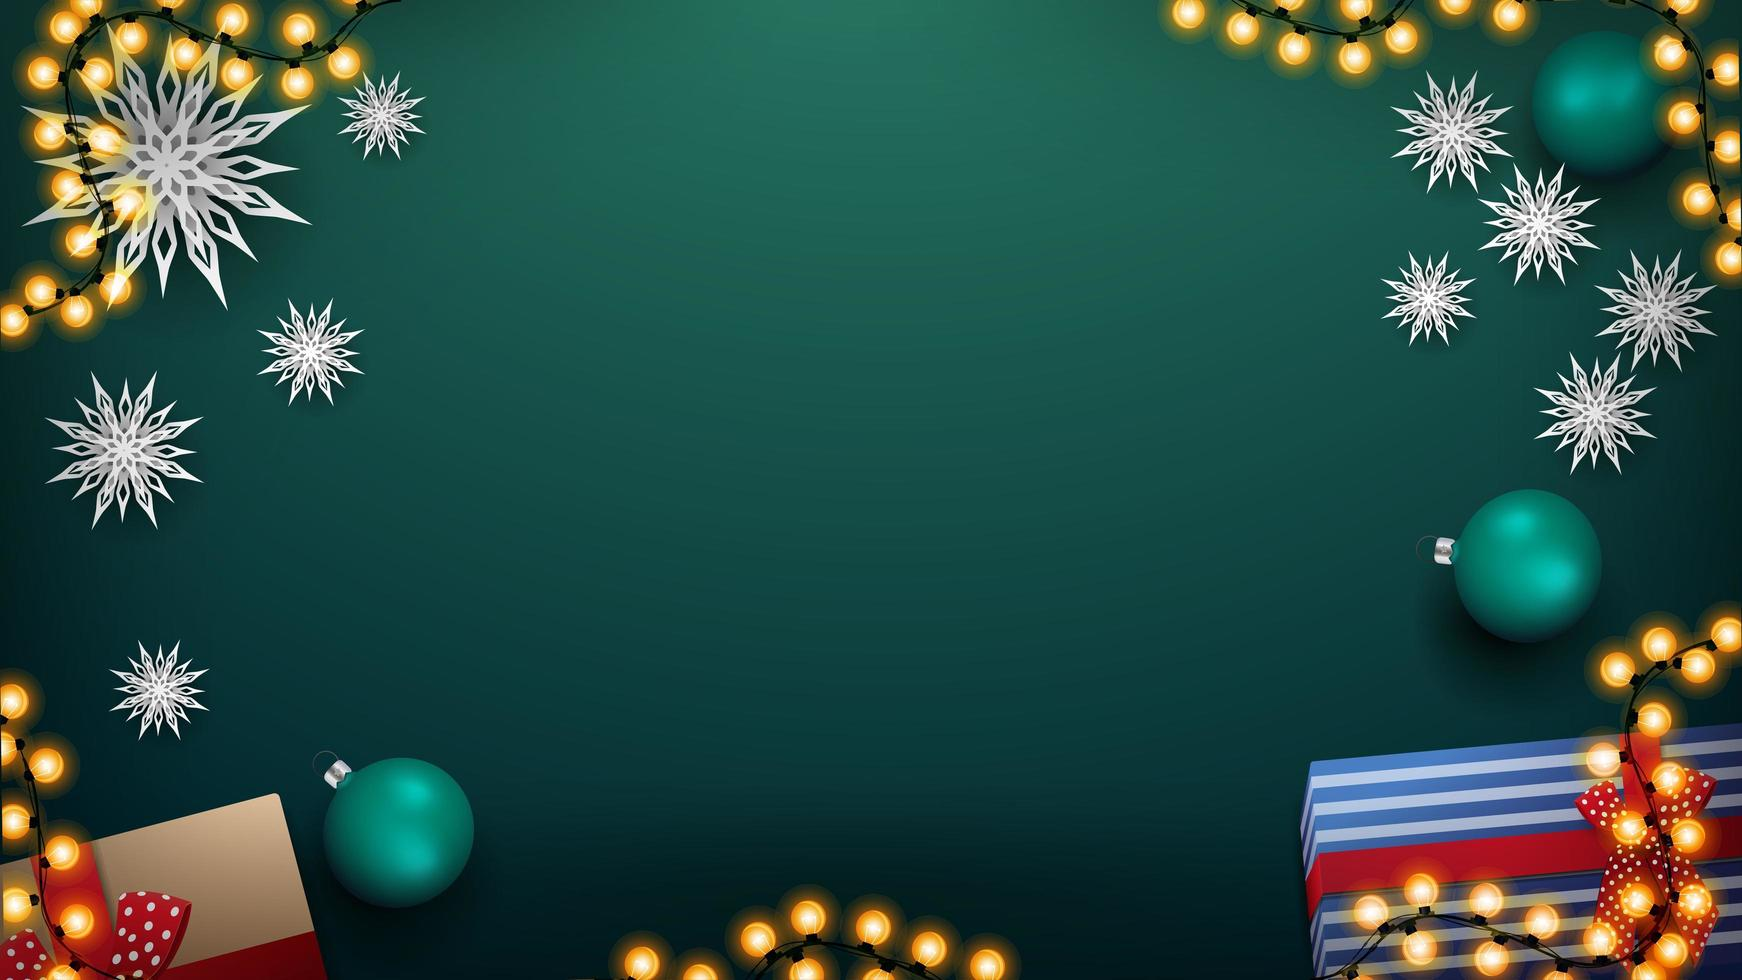 Christmas green background with garland and green balls vector